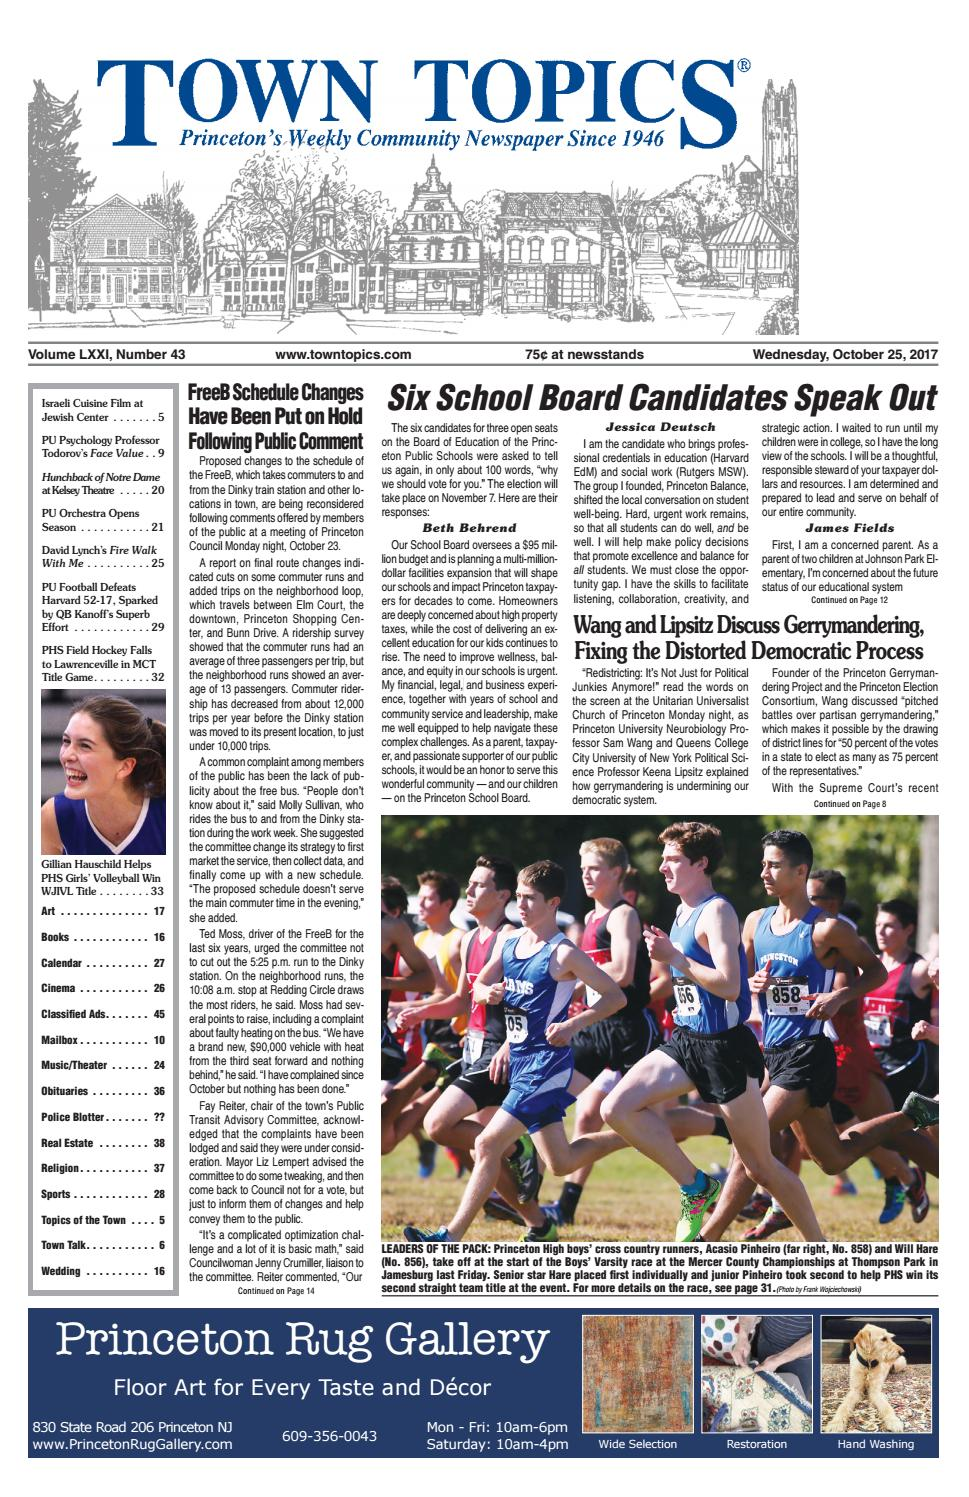 Town Topics Newspaper October 25, 2017 by Witherspoon Media Group - issuu